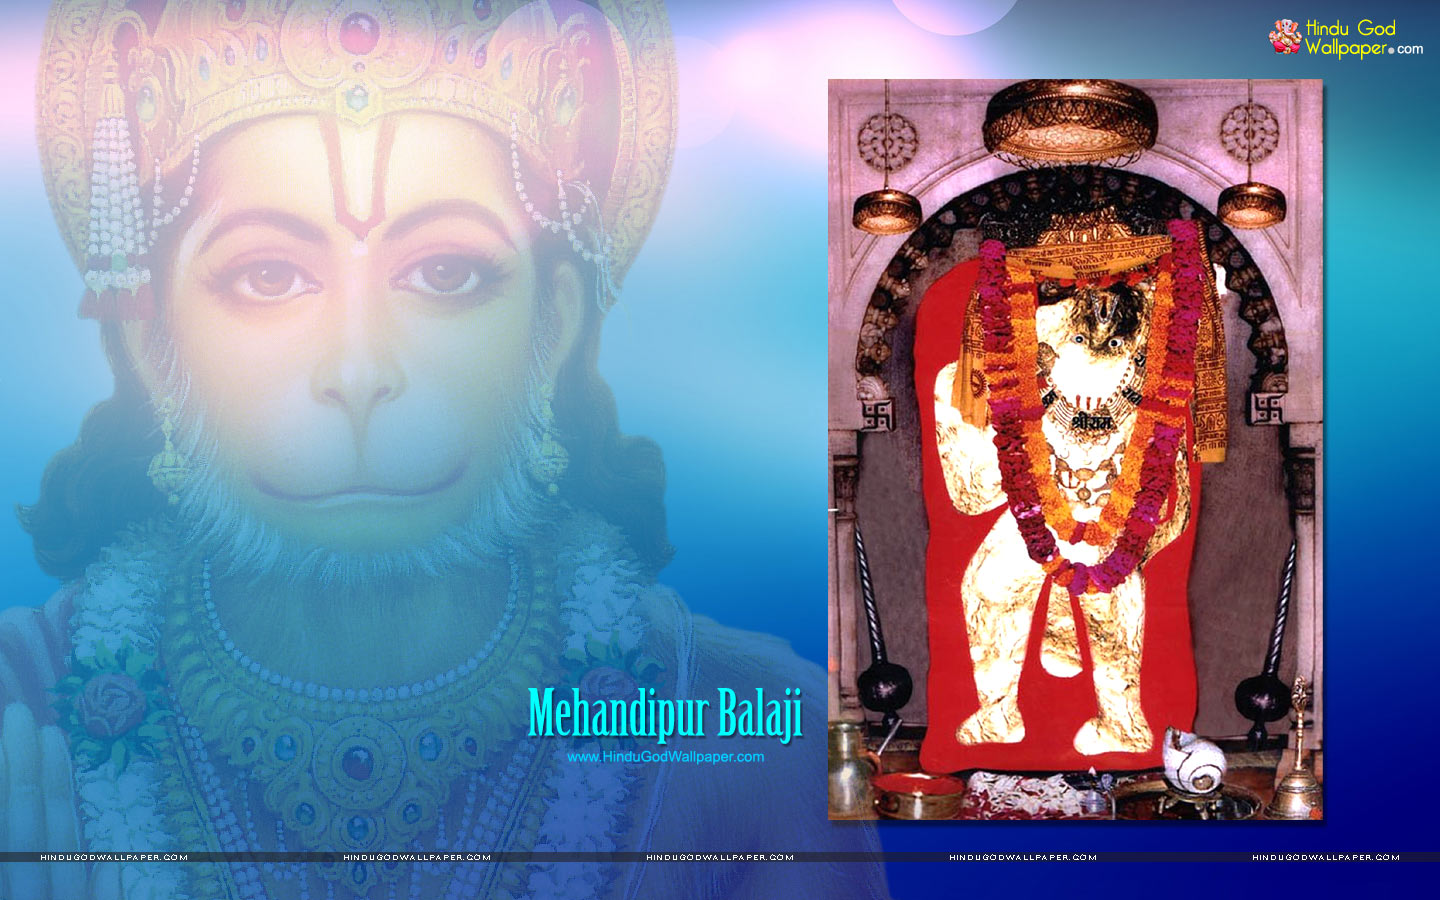 mehandipur balaji wallpaper